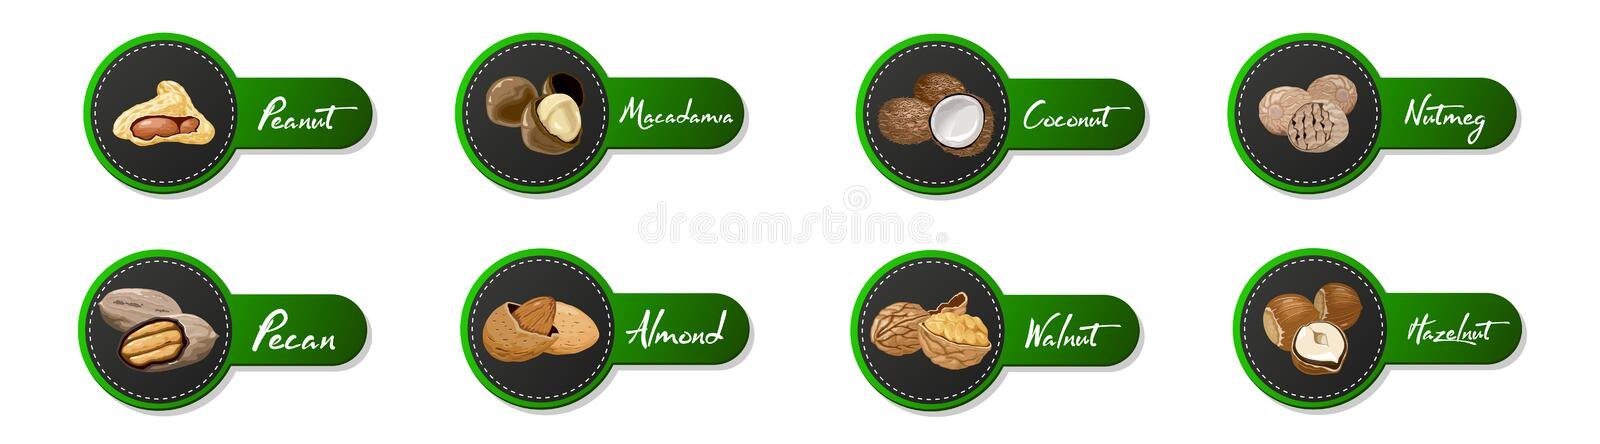 Set of named icons nuts. Logo set Vector labels with walnut, coconut, nutmeg, hazelnut, pecan, almond, peanut, macadamia royalty free illustration